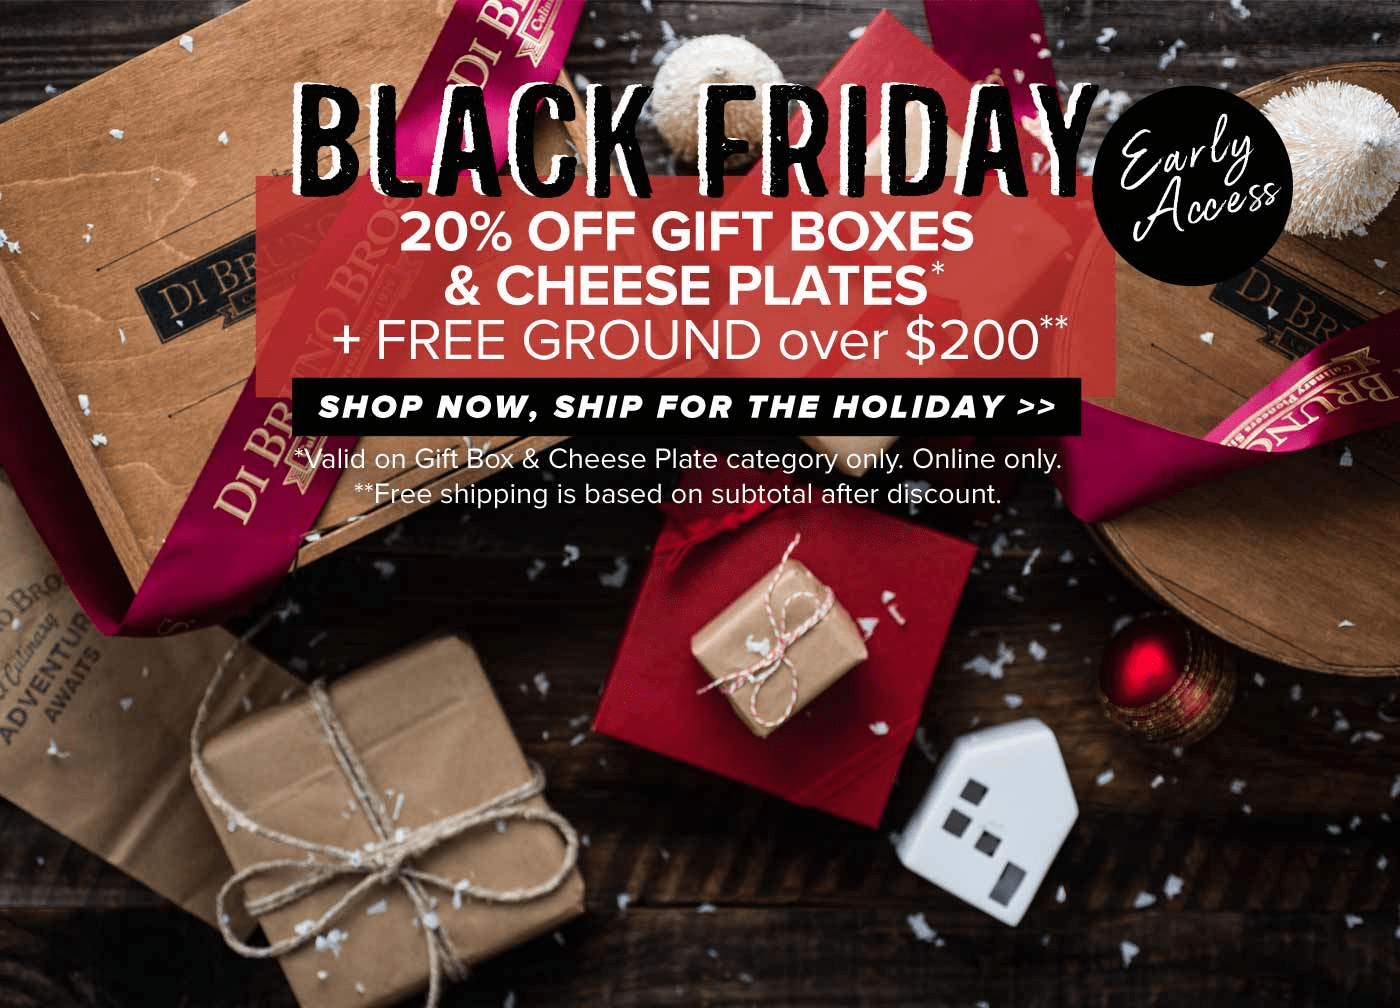 DiBruno Bros Black Friday 2018 Coupon: Save 20% on Gifts + Free Shipping On $200+ Orders!